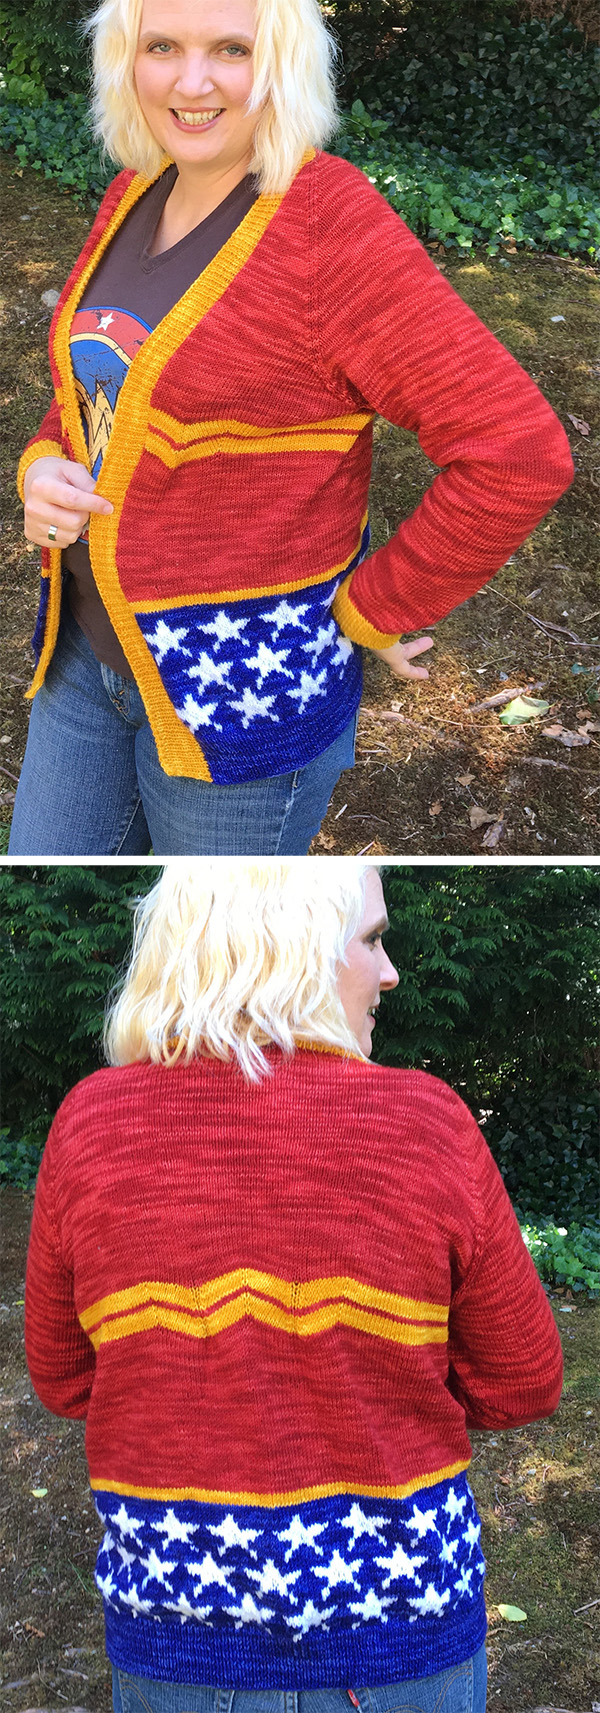 Knitting Patterns for Wonder Woman Sweater